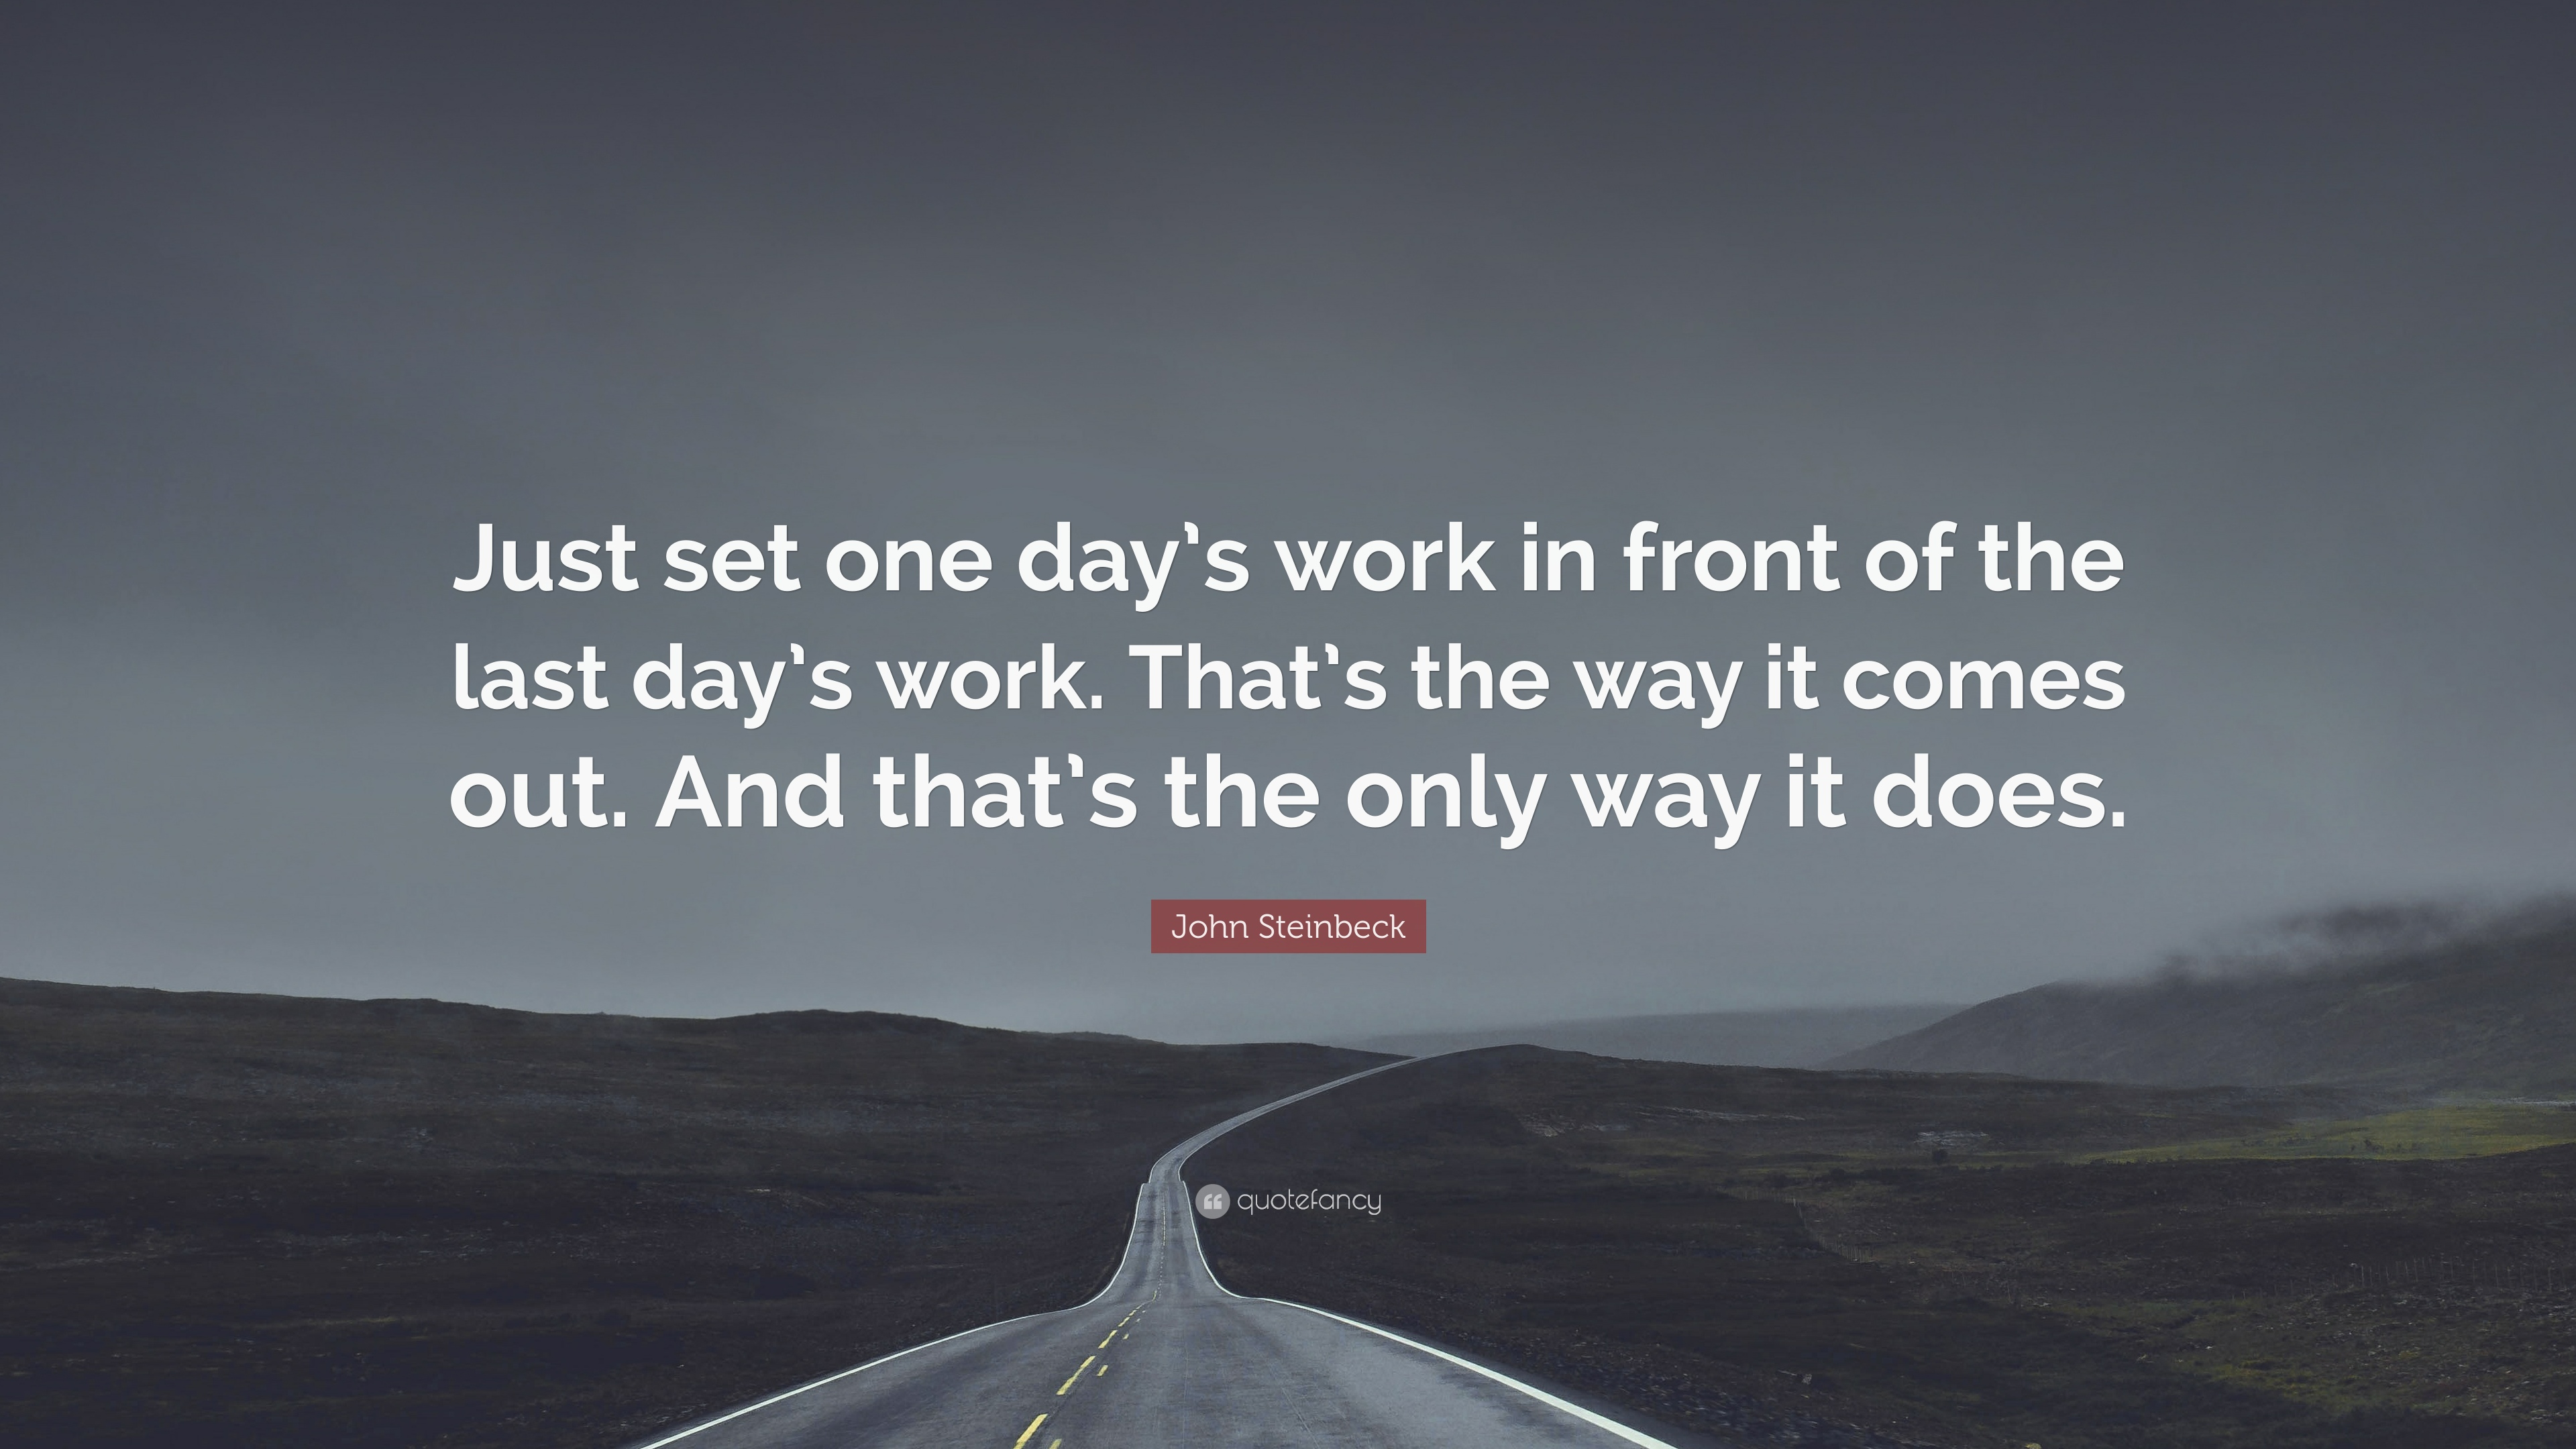 John Steinbeck Quote Just Set One Days Work In Front Of The Last